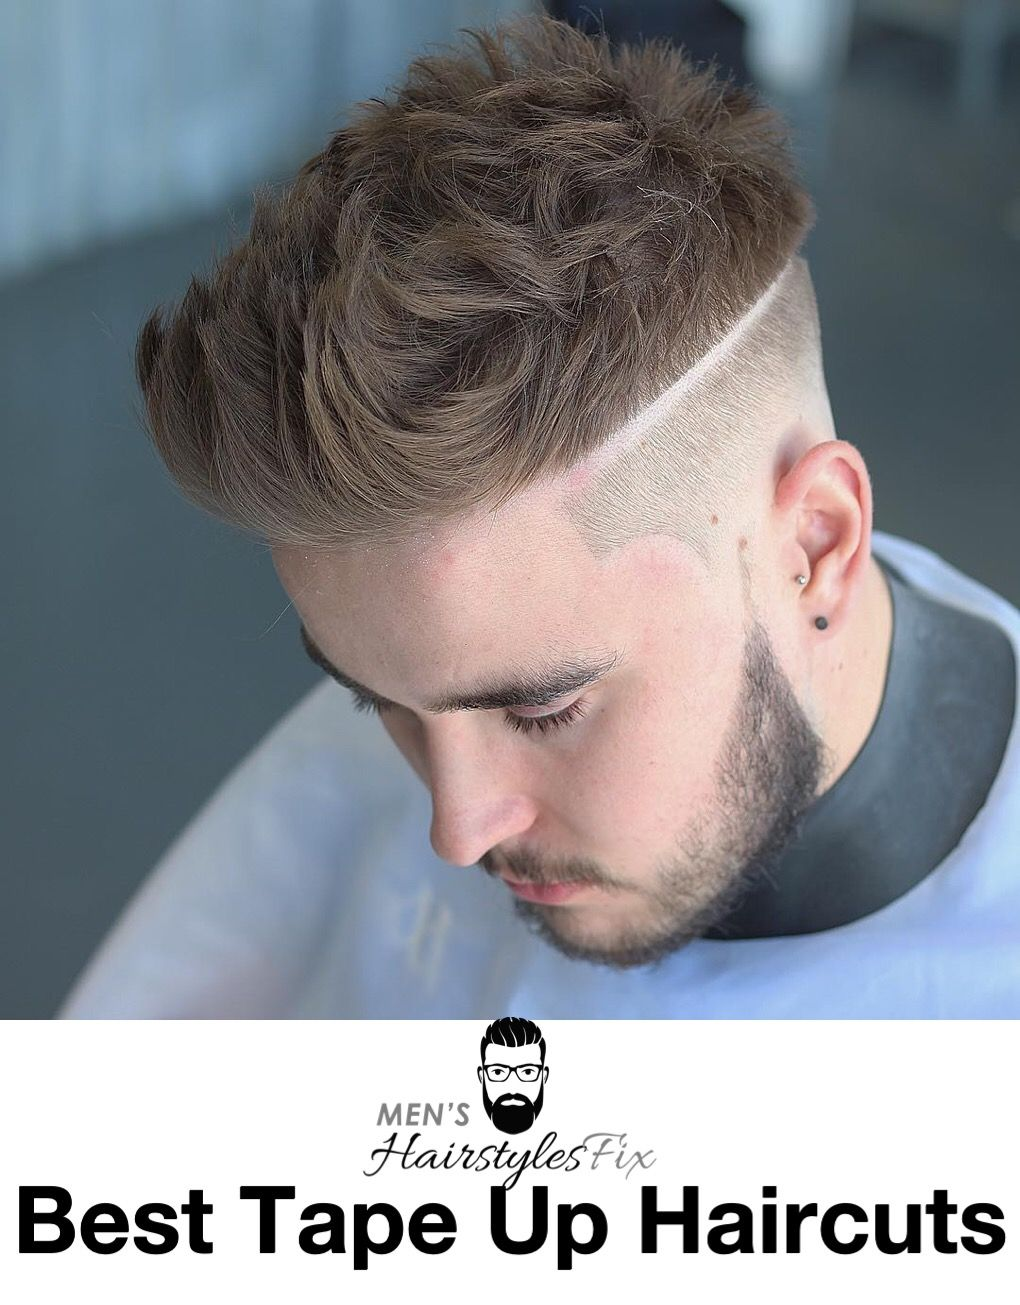 20 Best Tape Up Haircuts In 2018 Fade Haircuts Pinterest Hair